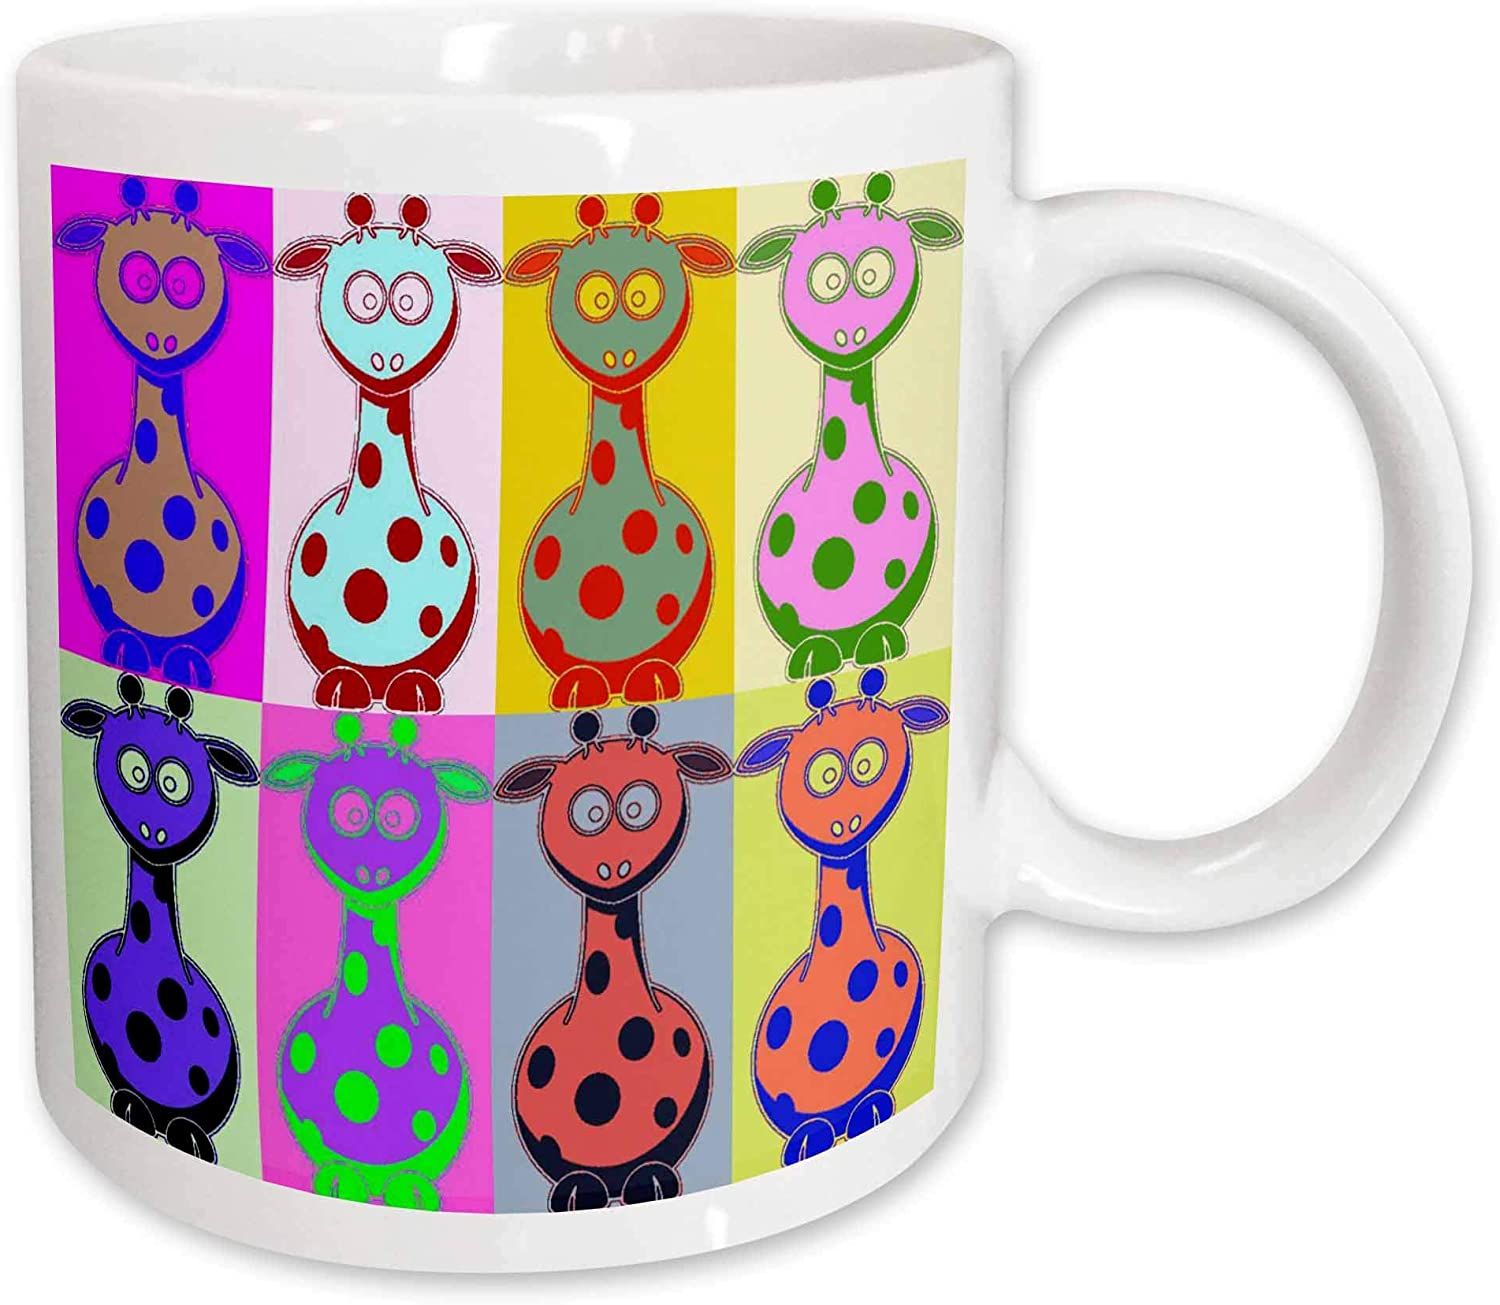 3drose Cartoon Giraffe Pop Art Mug 11 Ounce Kitchen Dining